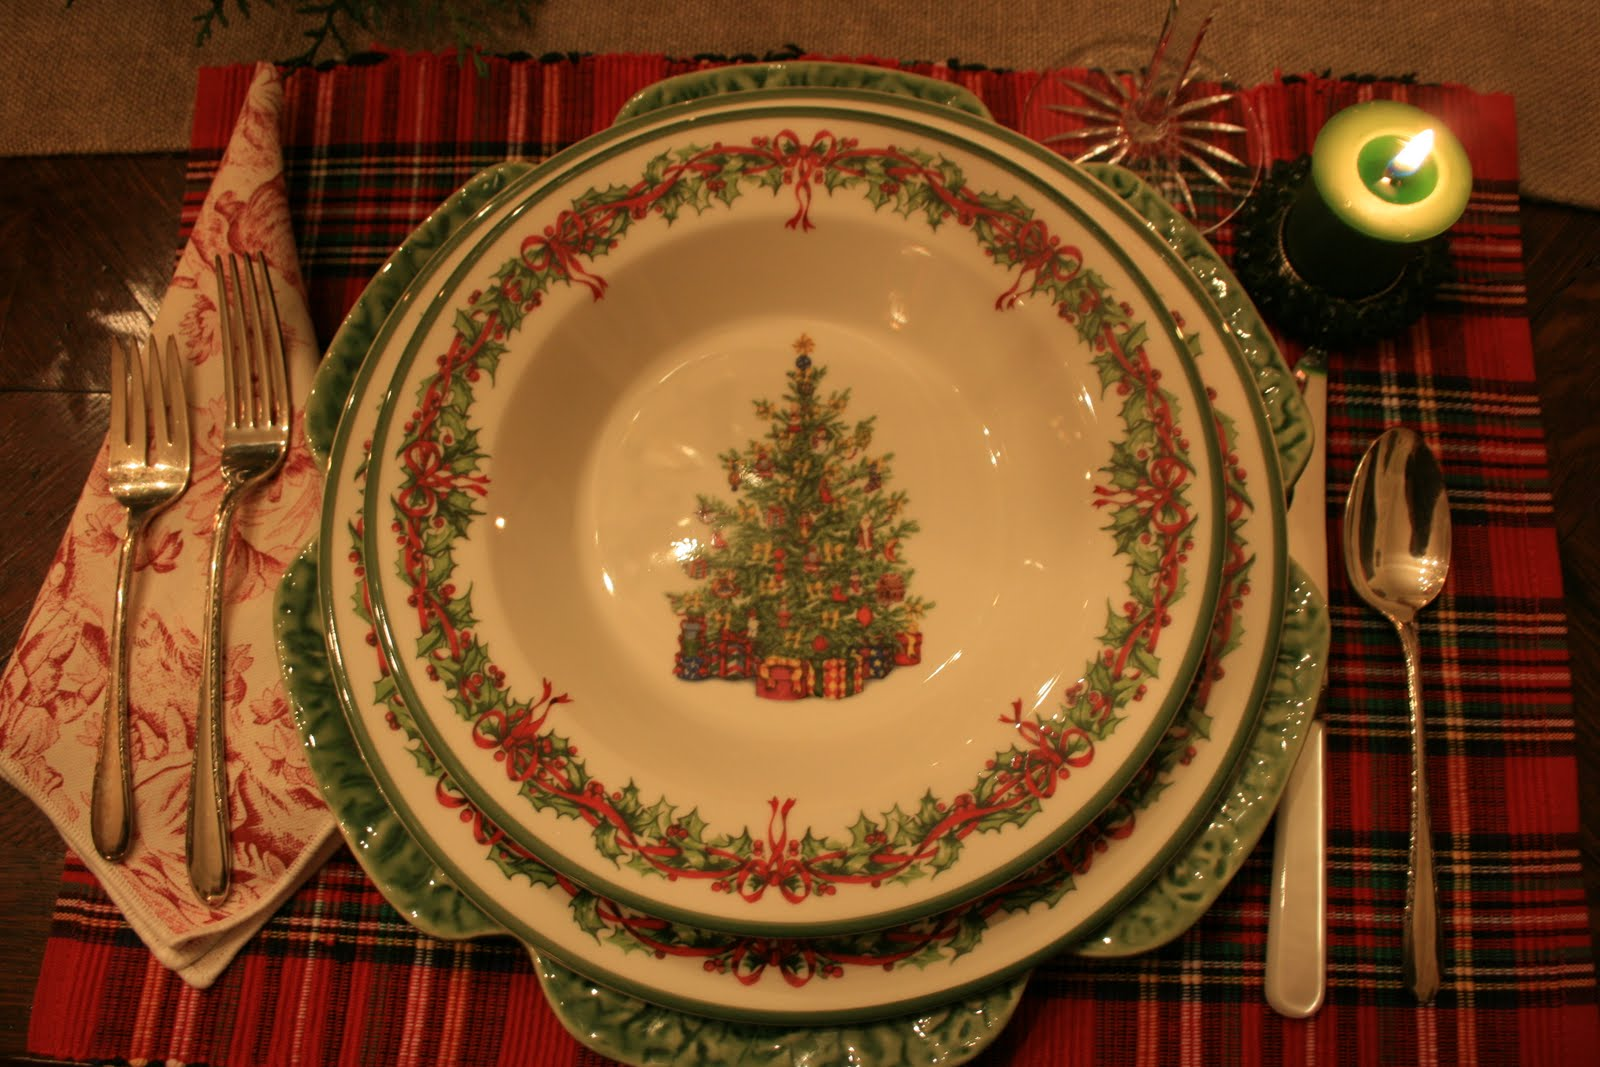 Vignette Design Christmas Tablescapes From The Past